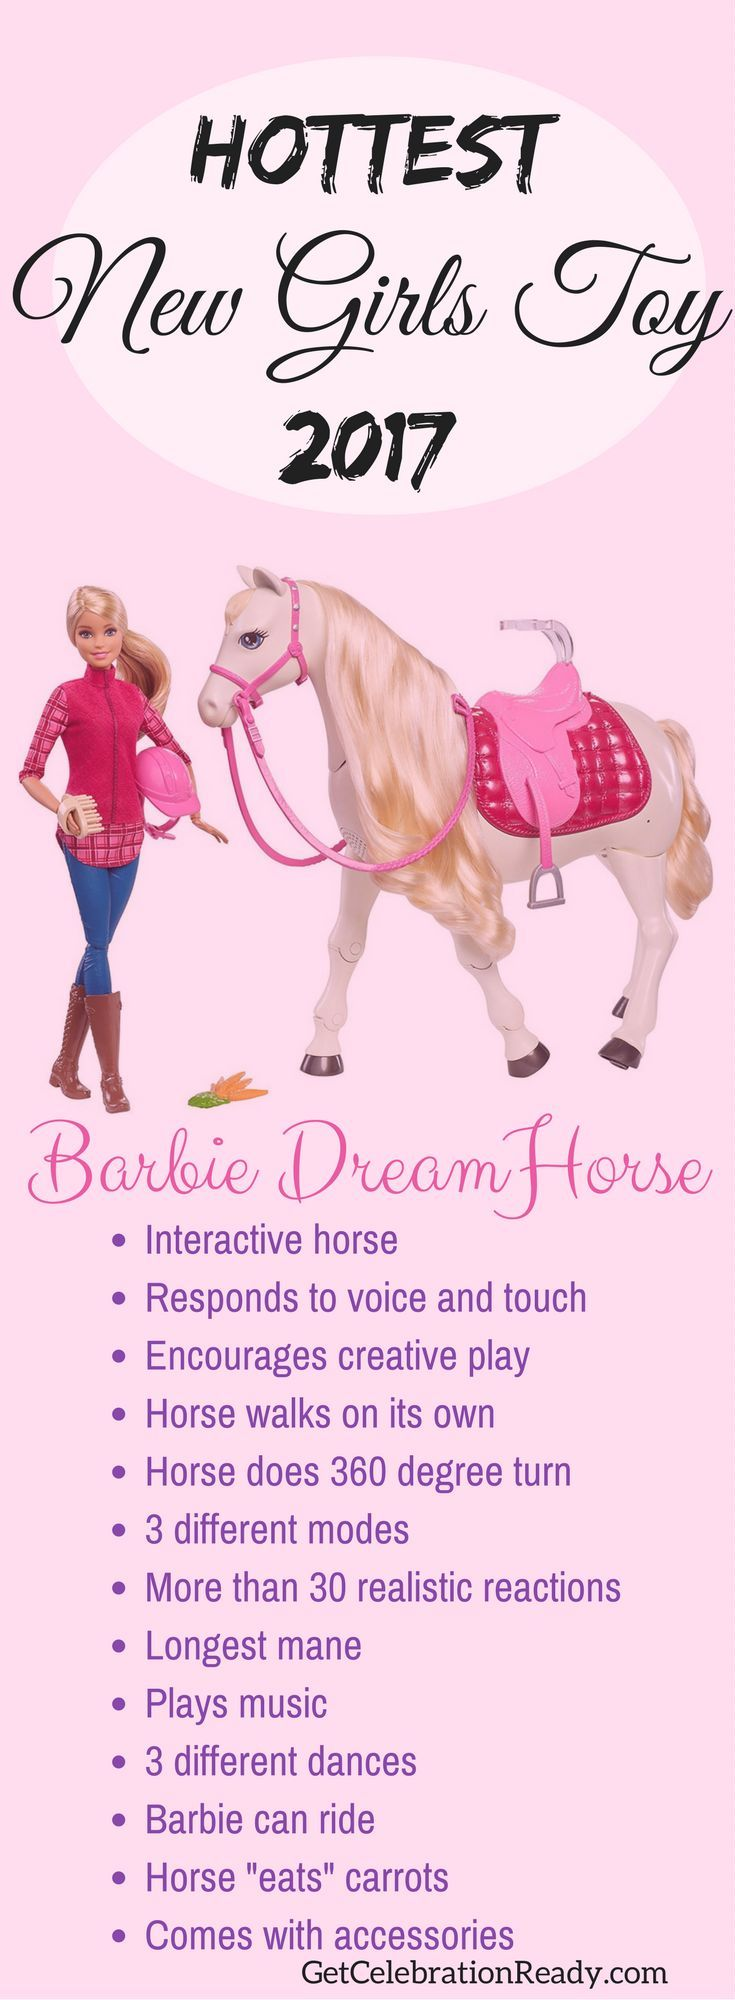 Your daughter will be delighted to receive the Barbie DreamHorse for Christmas. This is the best Barbie horse yet. It's interactive. This is the hottest new girls toy for 2017. Make this Christmas one to remember.